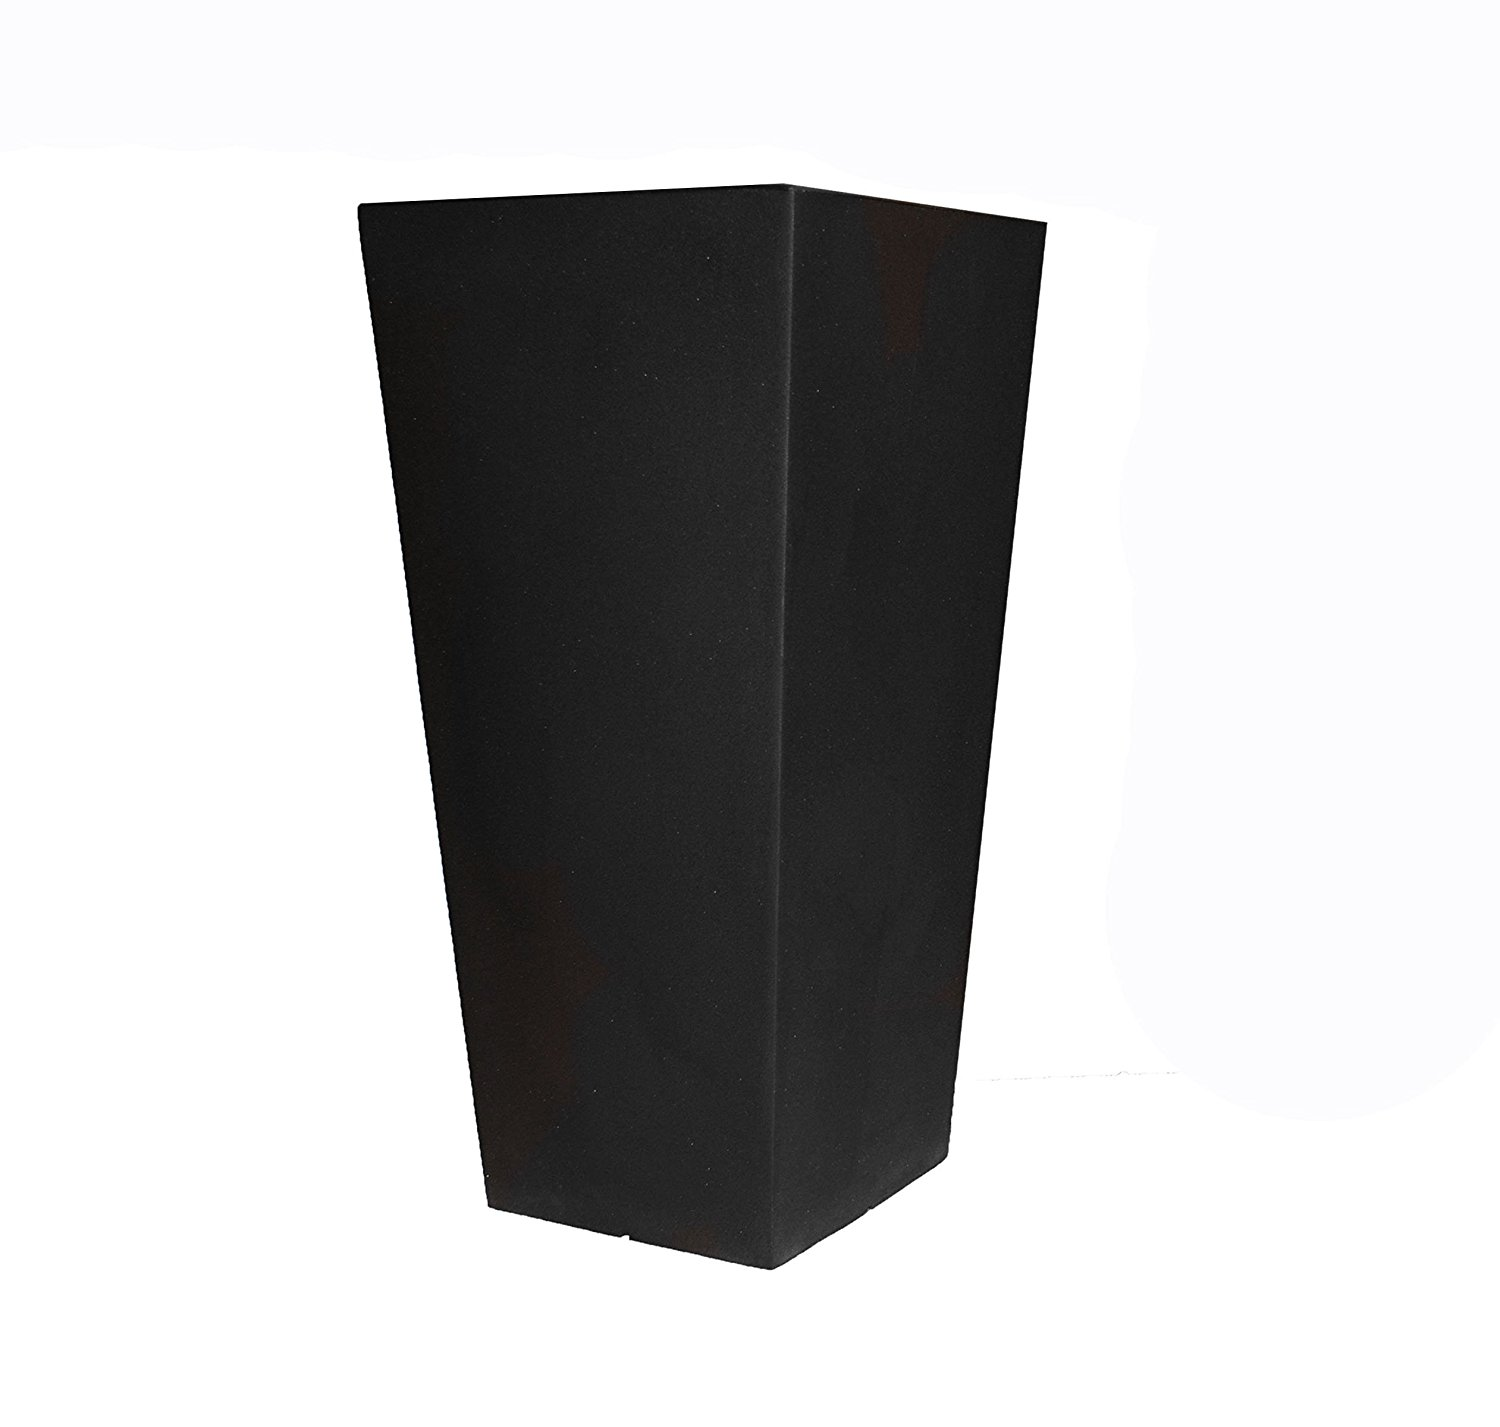 Tall Planters   Tall Planter Pots   Tall Outdoor Planters